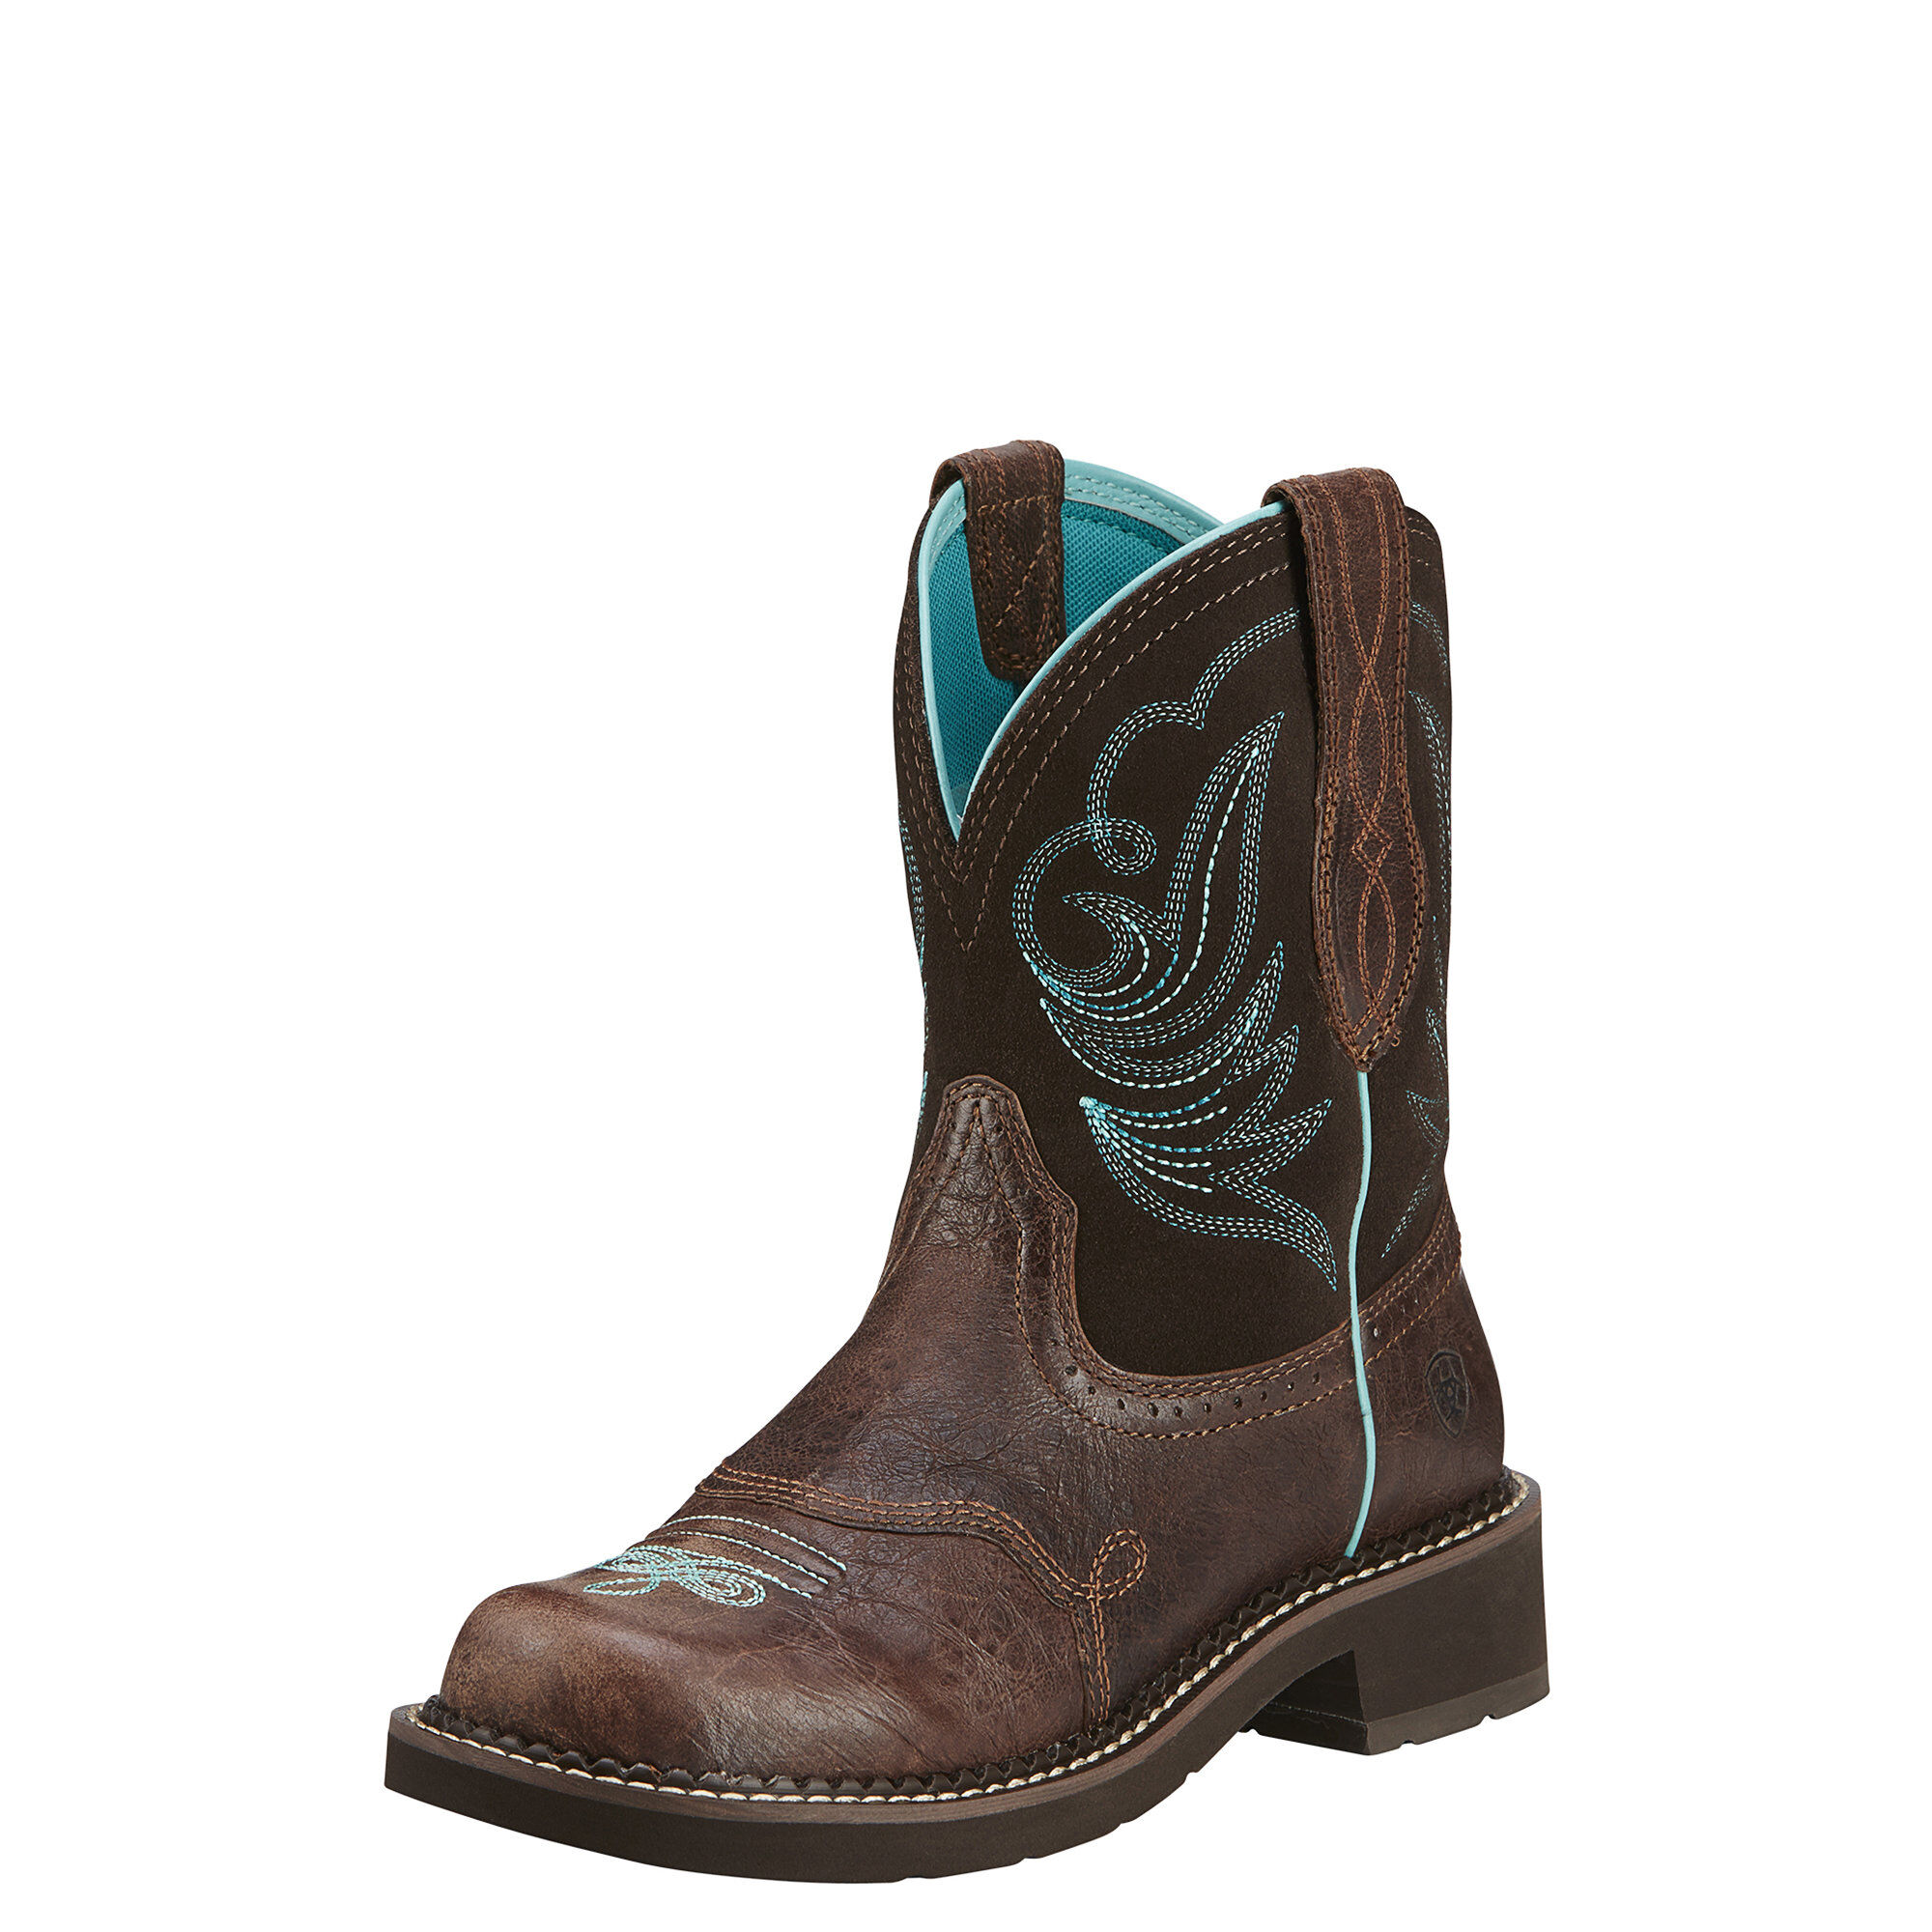 Women's Fatbaby Heritage Dapper Western Boots in Royal Chocolate by Ariat